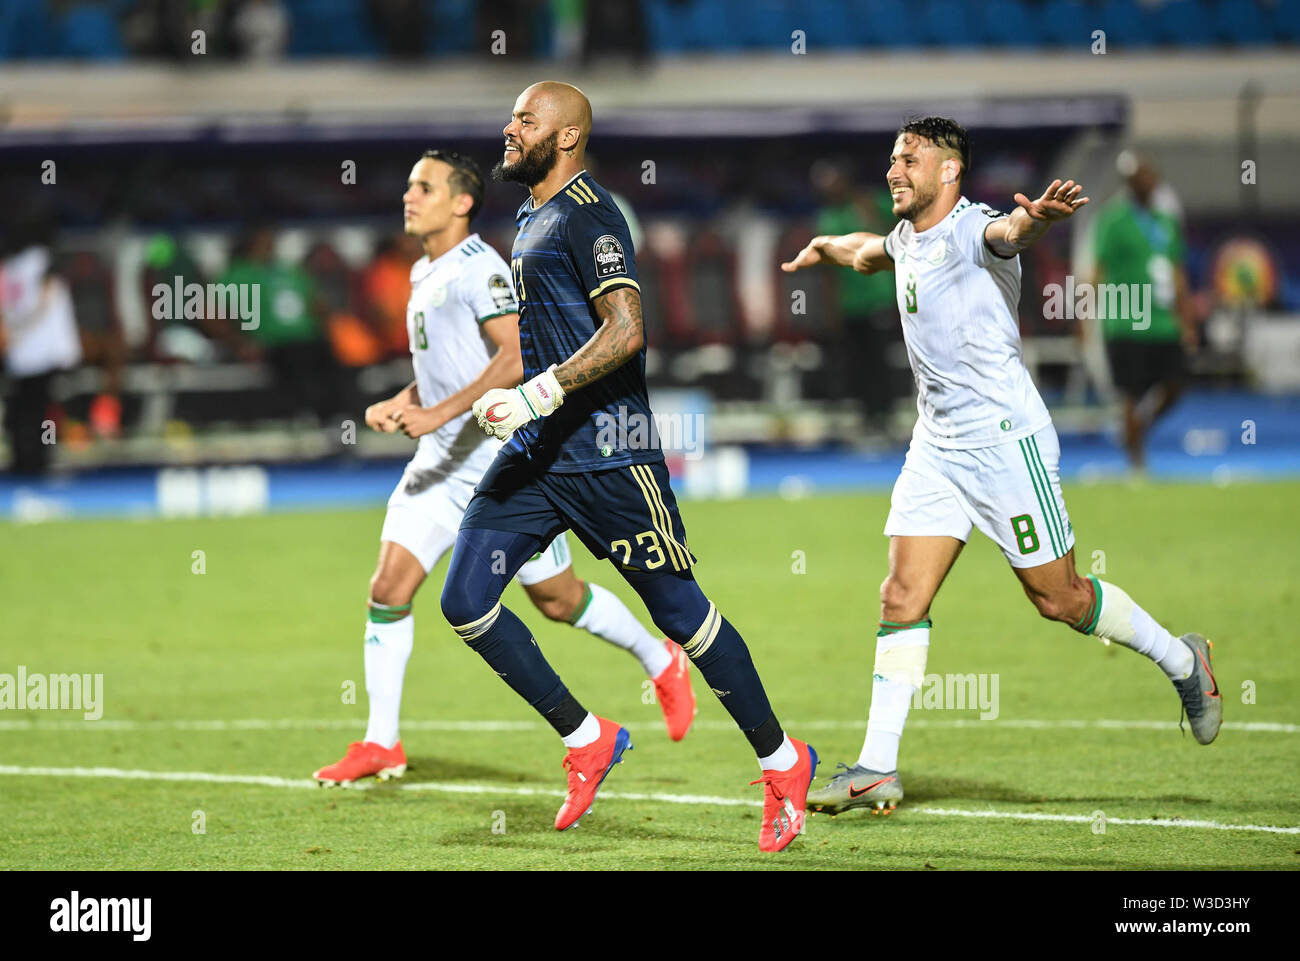 Cairo. 14th July, 2019. Players of Algeria celebrate the victory after the semifinal match between Algeria and Nigeria at the 2019 Africa Cup of Nations in Cairo, Egypt on July 14, 2019. Credit: Li Yan/Xinhua/Alamy Live News - Stock Image